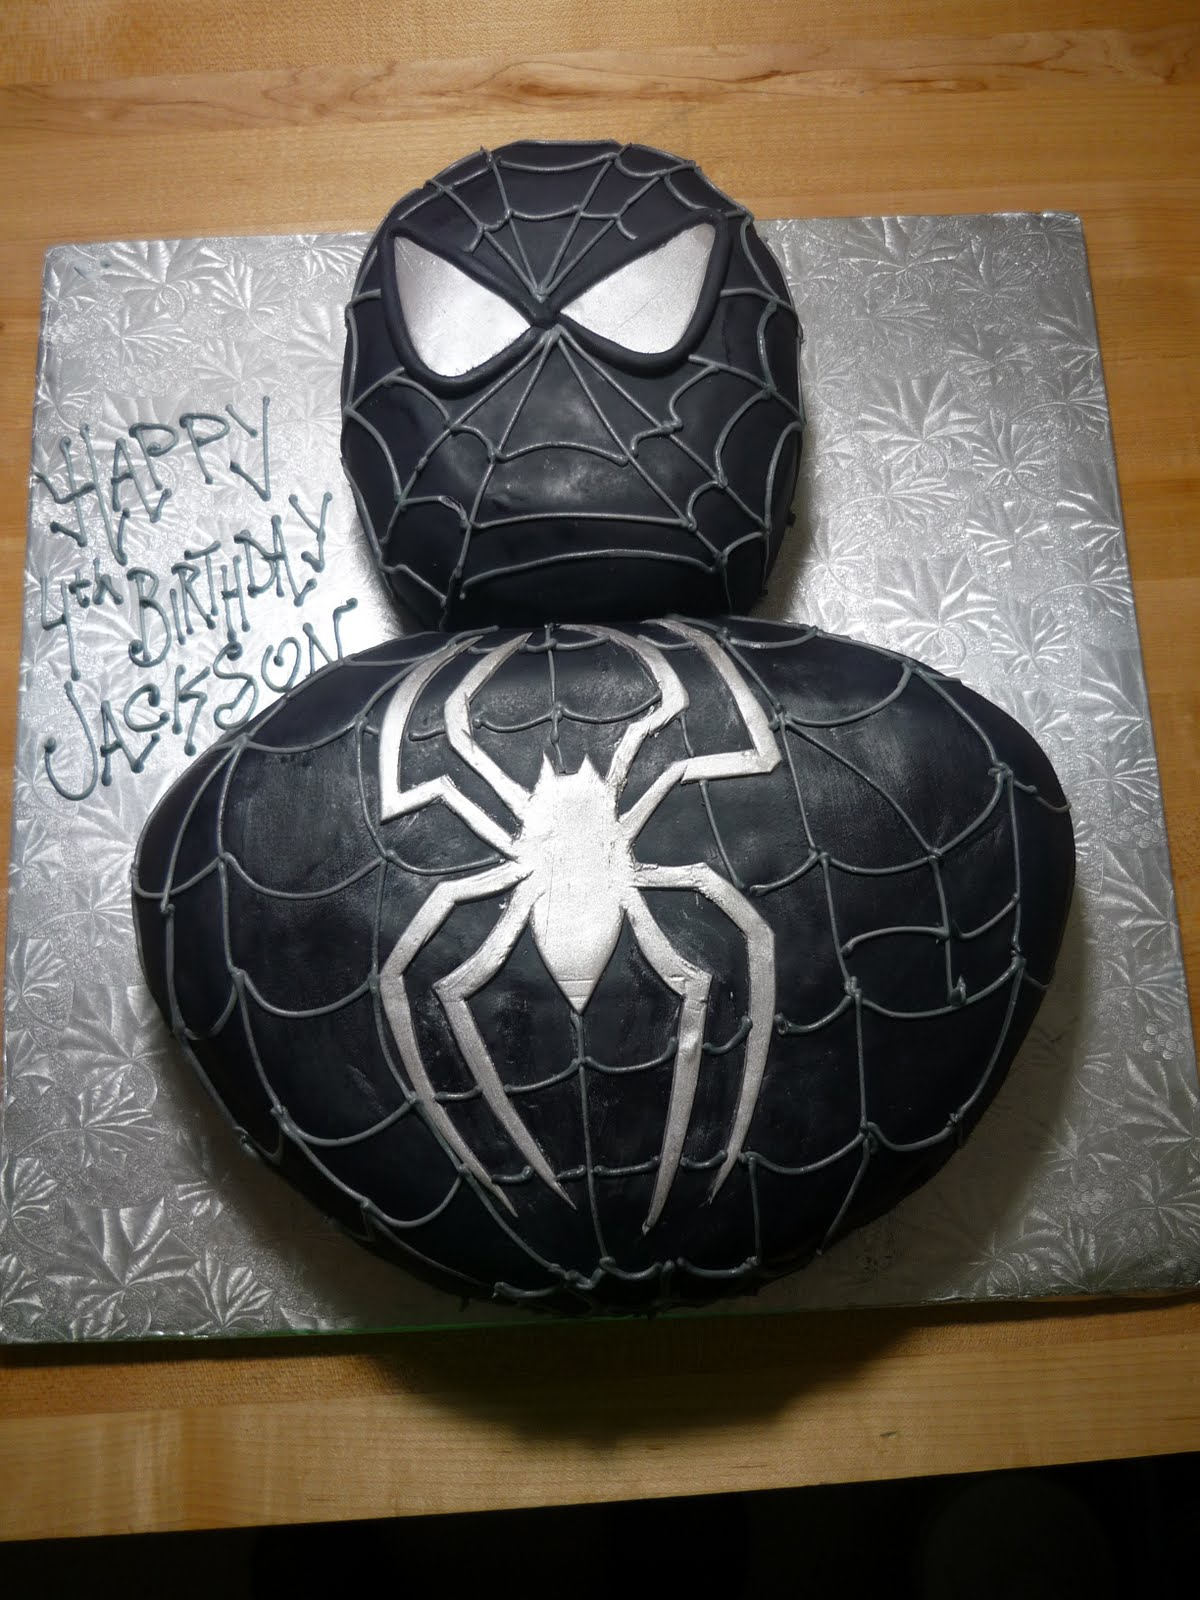 Black spiderman cakes - photo#1